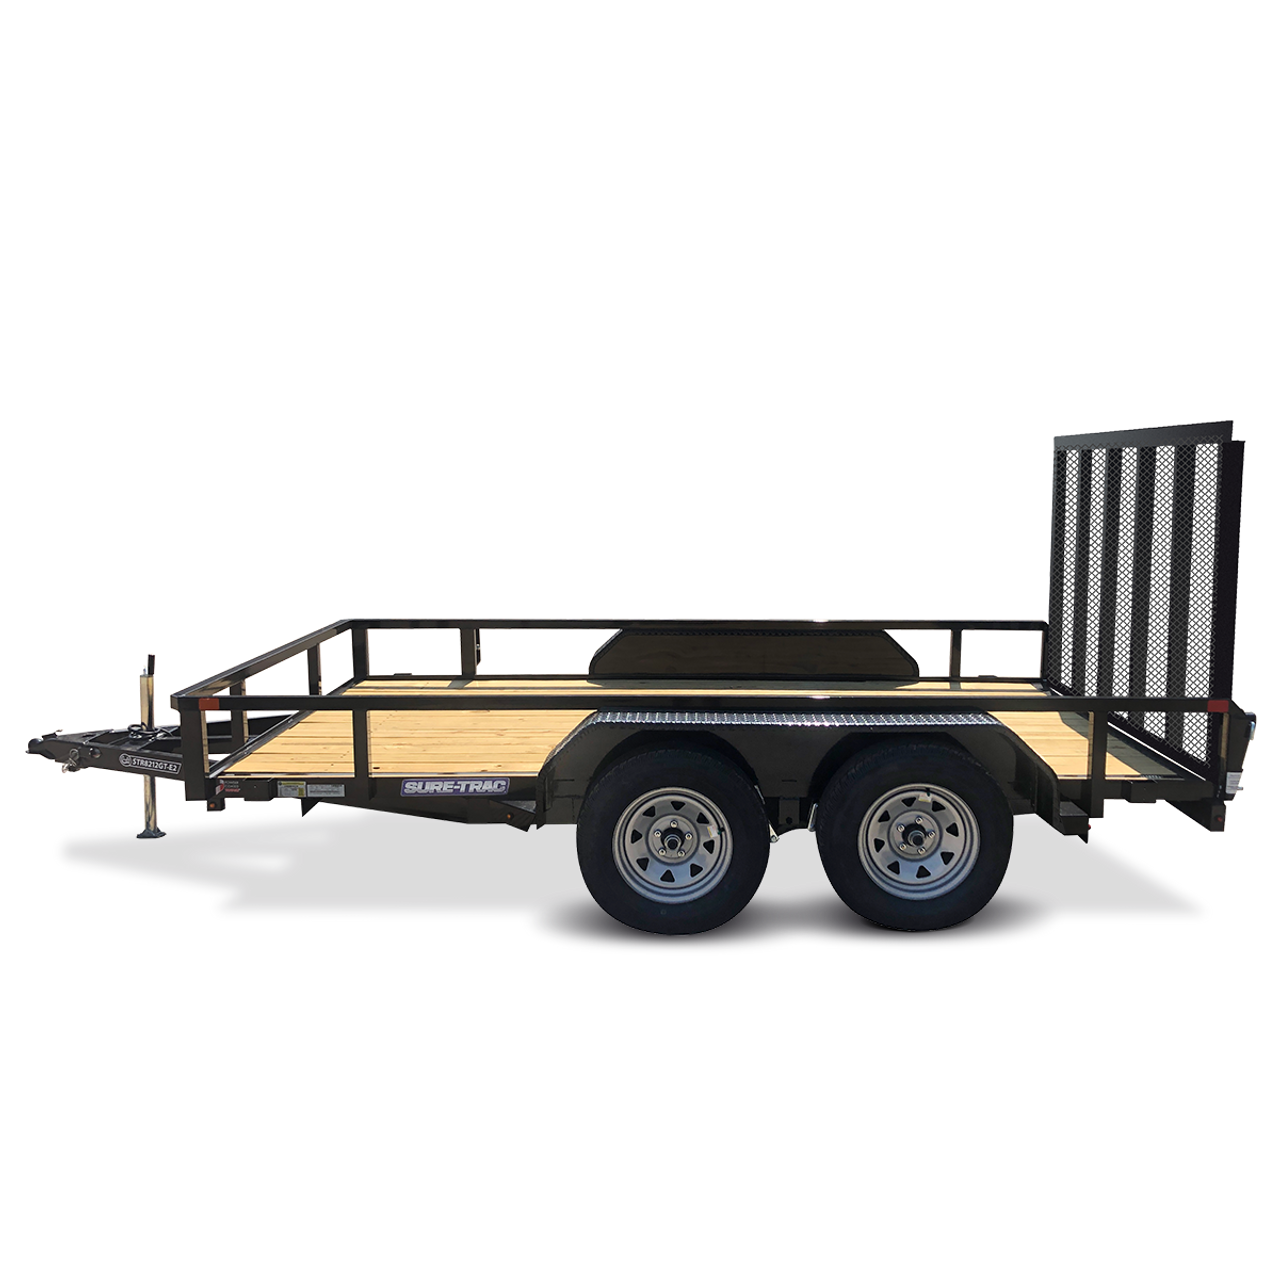 "STR8212GT-E2 --- 82"" x 12' Trailer with Tube Top Rails and Ramp Gate"